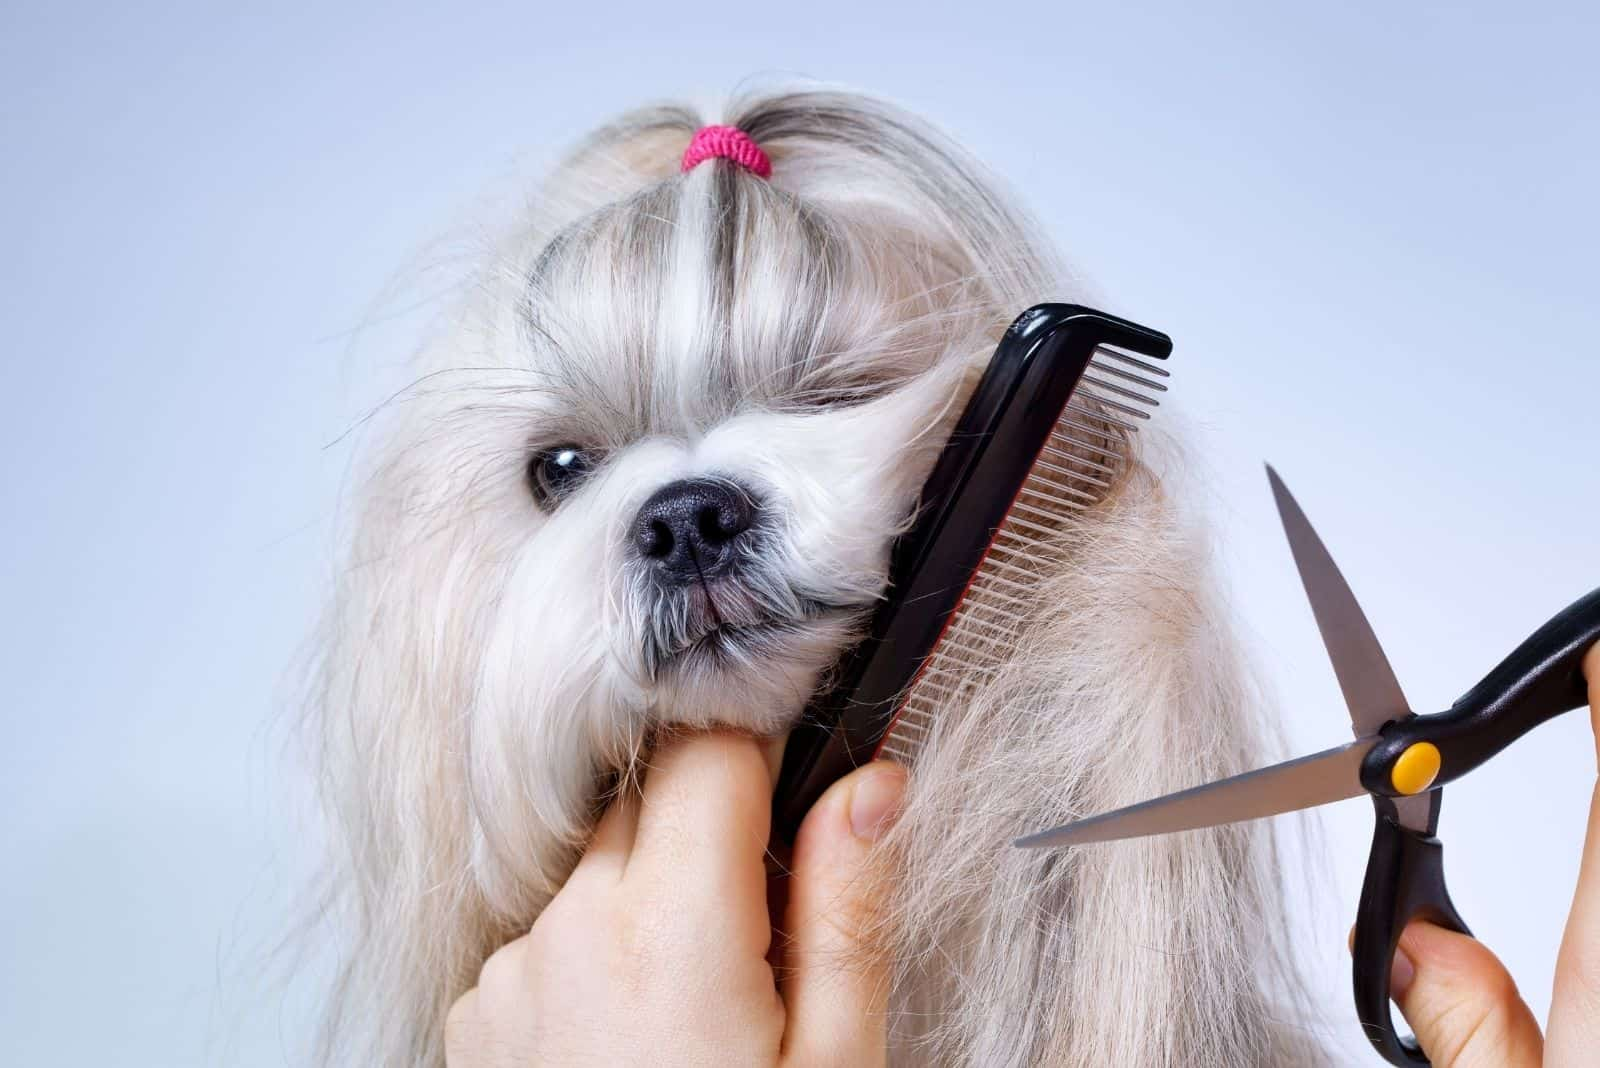 grooming white shih tzu dog with scissors and comb